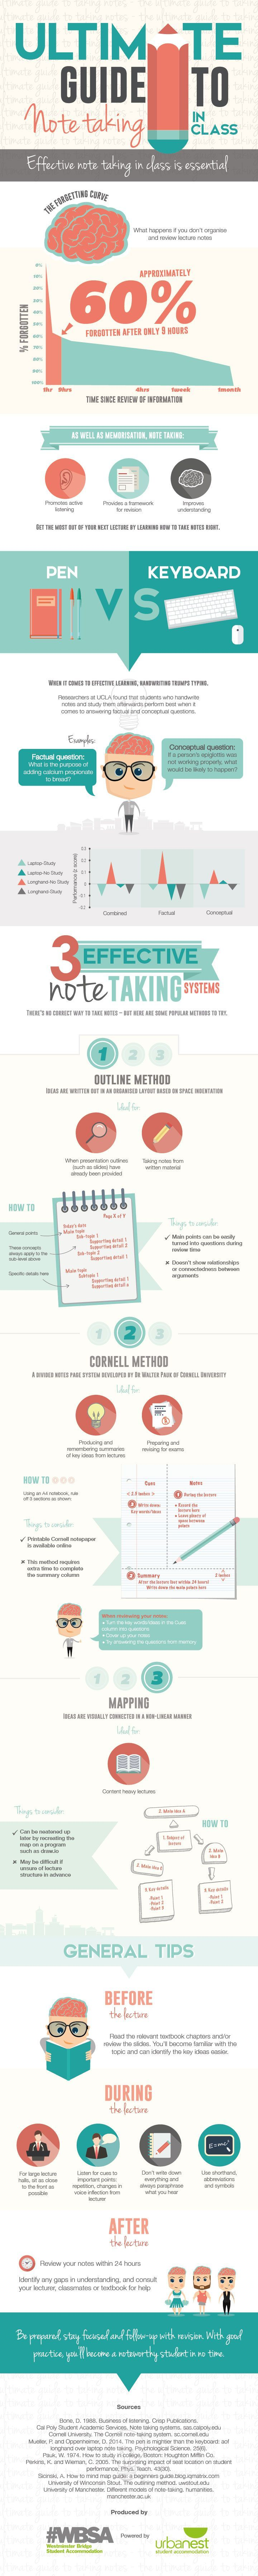 how to: note taking - ultimate guide - infograph - not just for students - excellent !